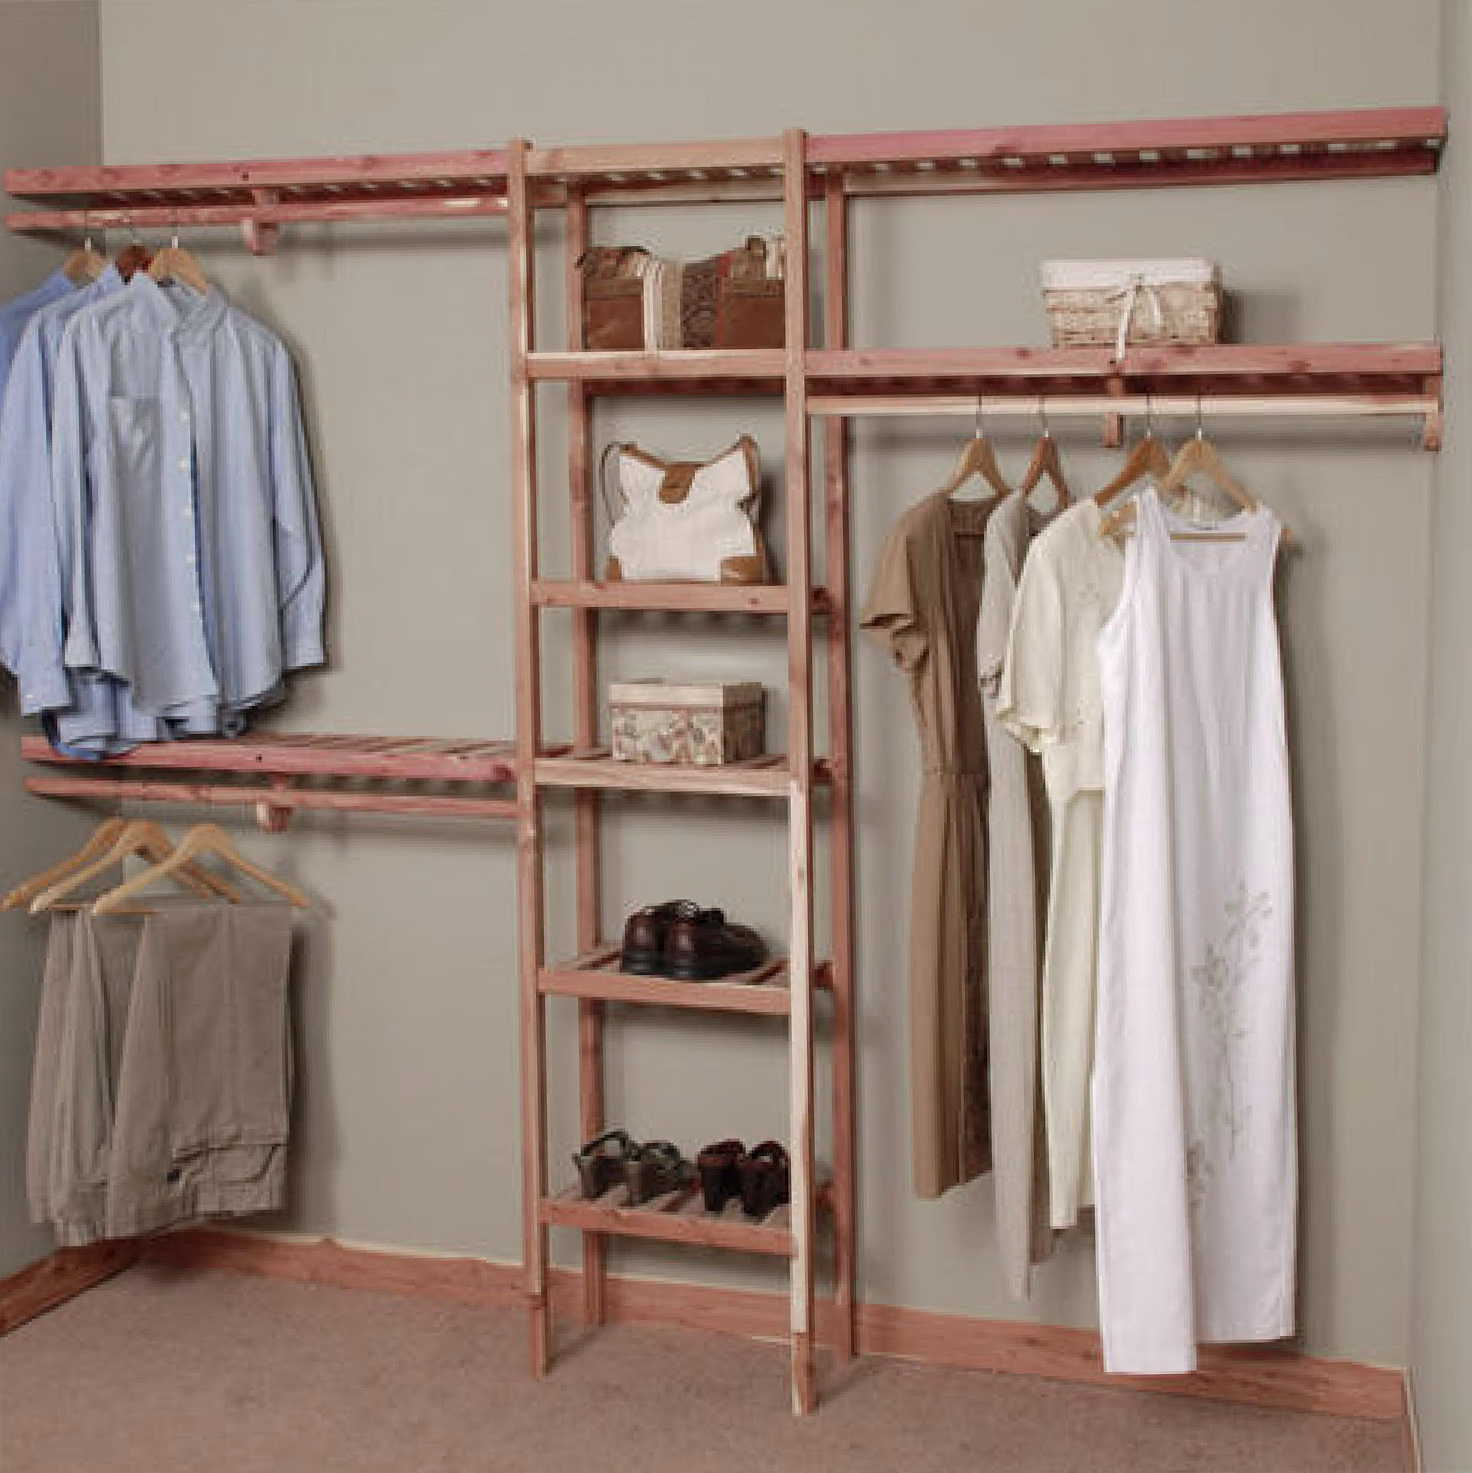 Inspiring Storage System Design Ideas with Cedar Closet Kit: Benefits Of Cedar Closet | Cedar Planking | Cedar Closet Kit